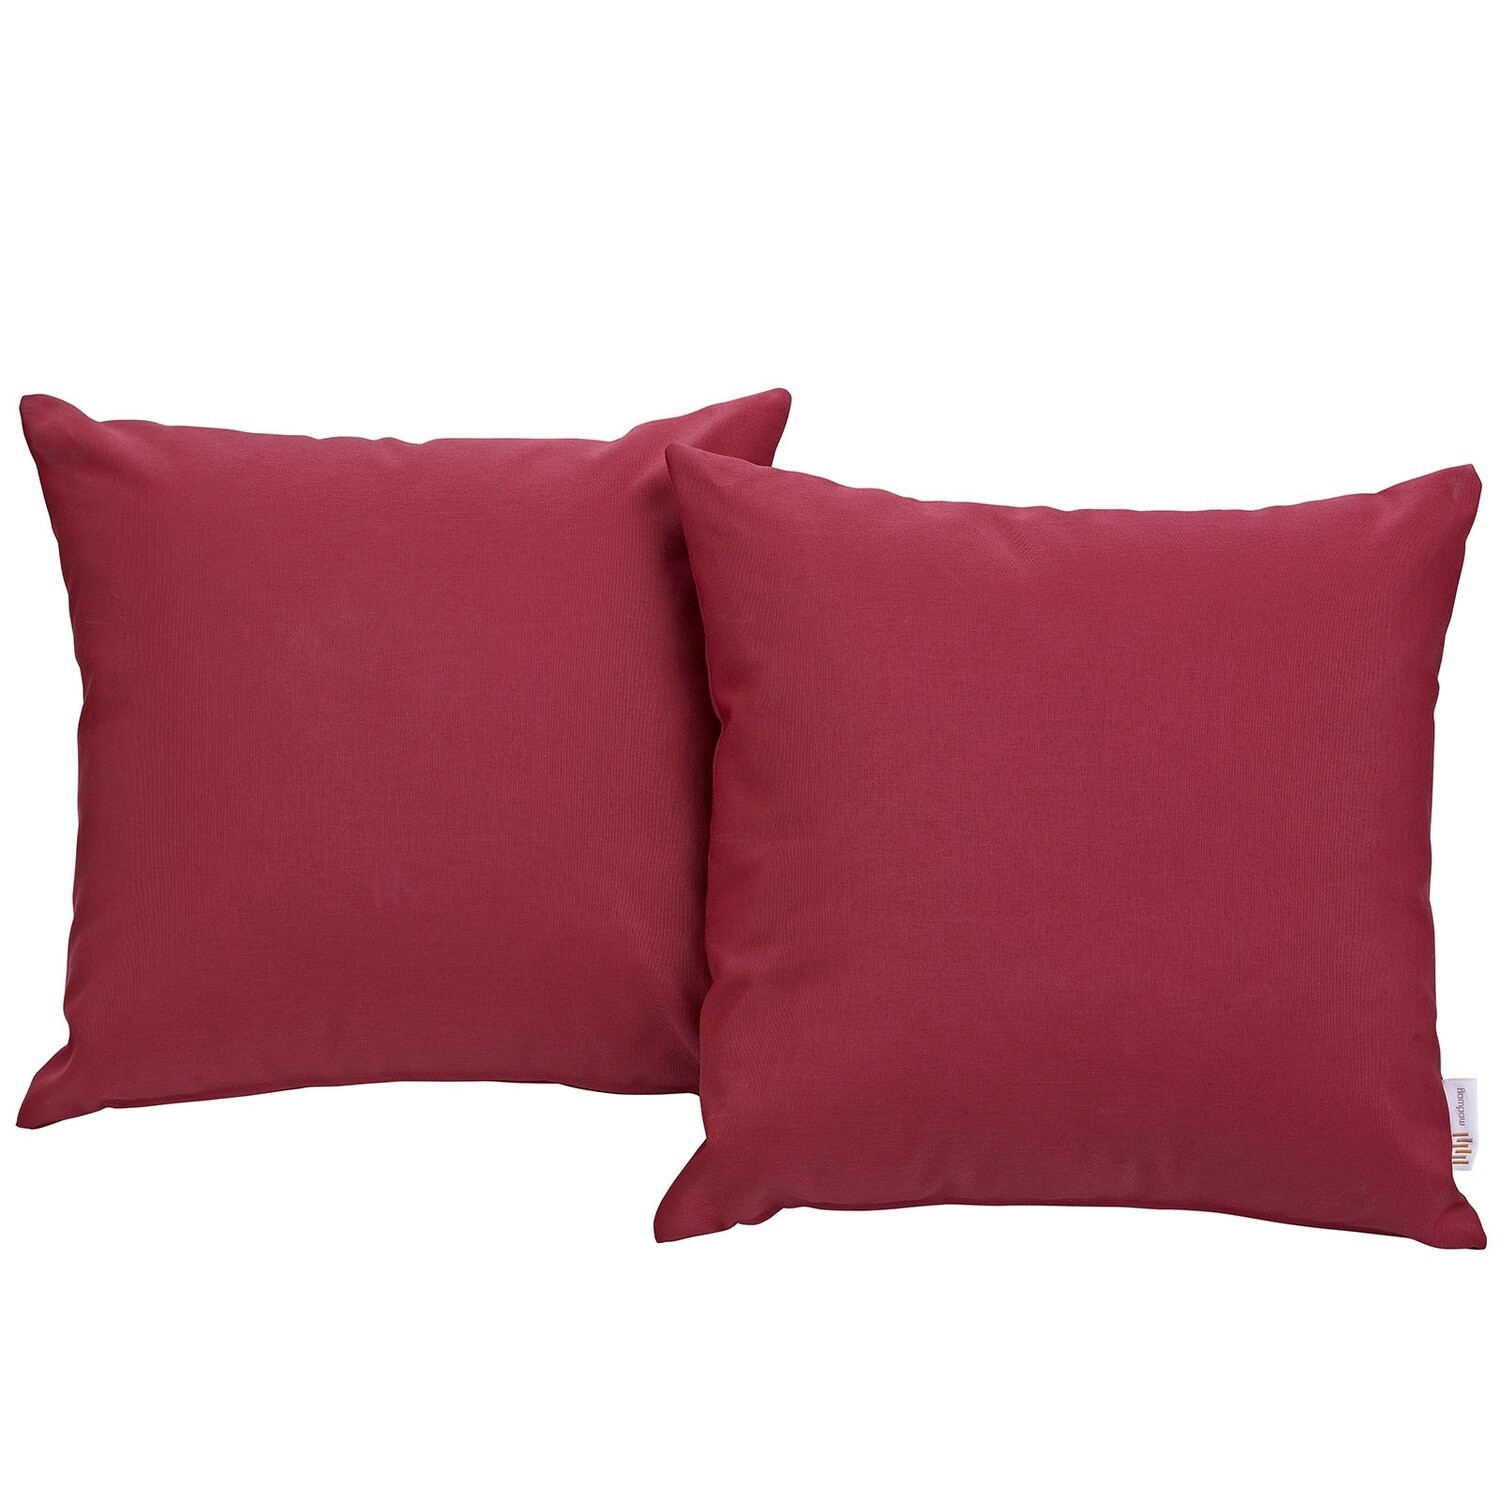 "Hinsdale Patio 2 Piece Pillow Set  17"" x 17"" in Red"